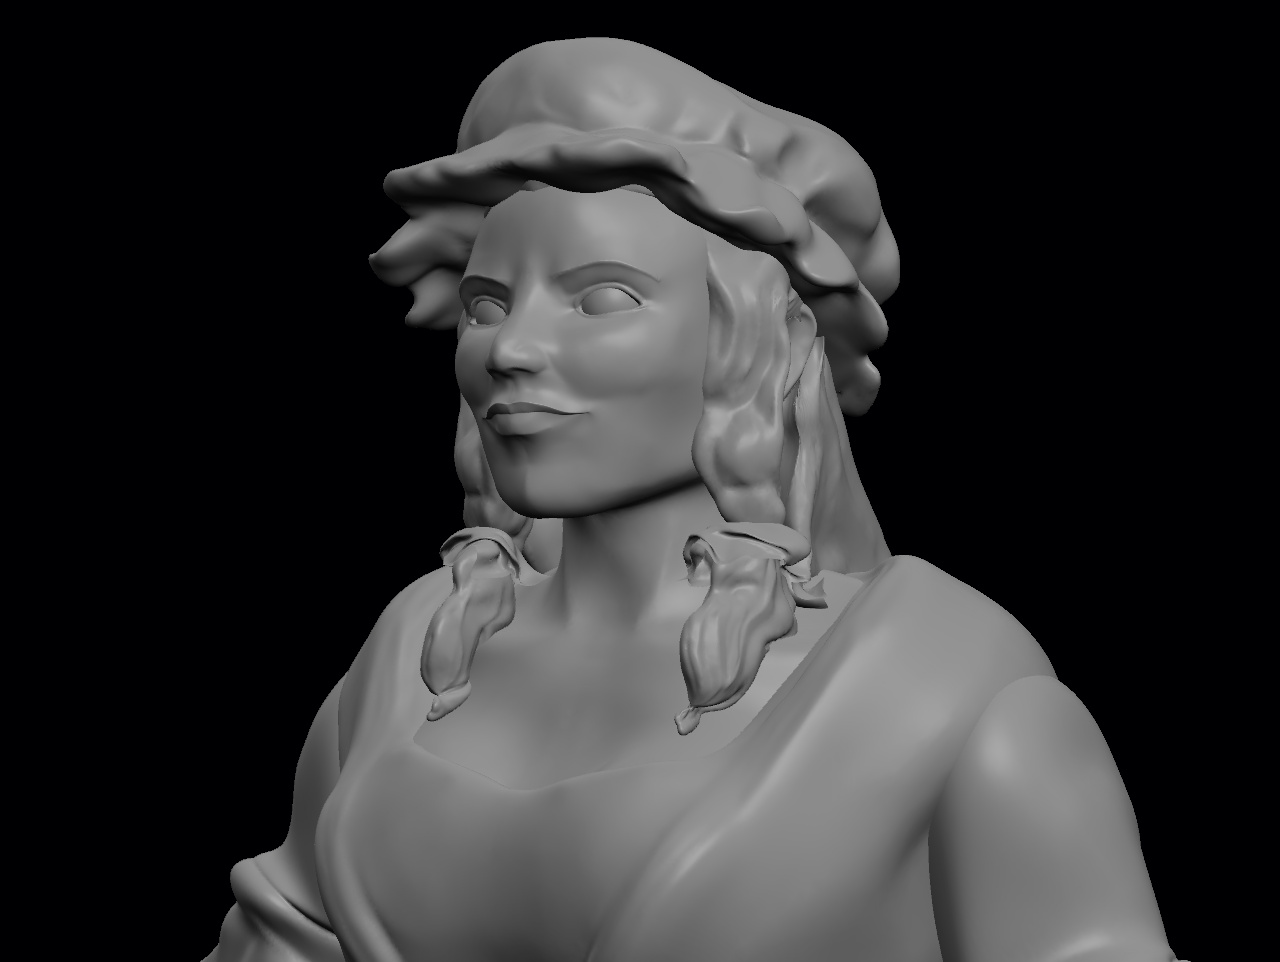 MollyPitcher_wip_Head3-4_by_whaleofatale2012.jpg